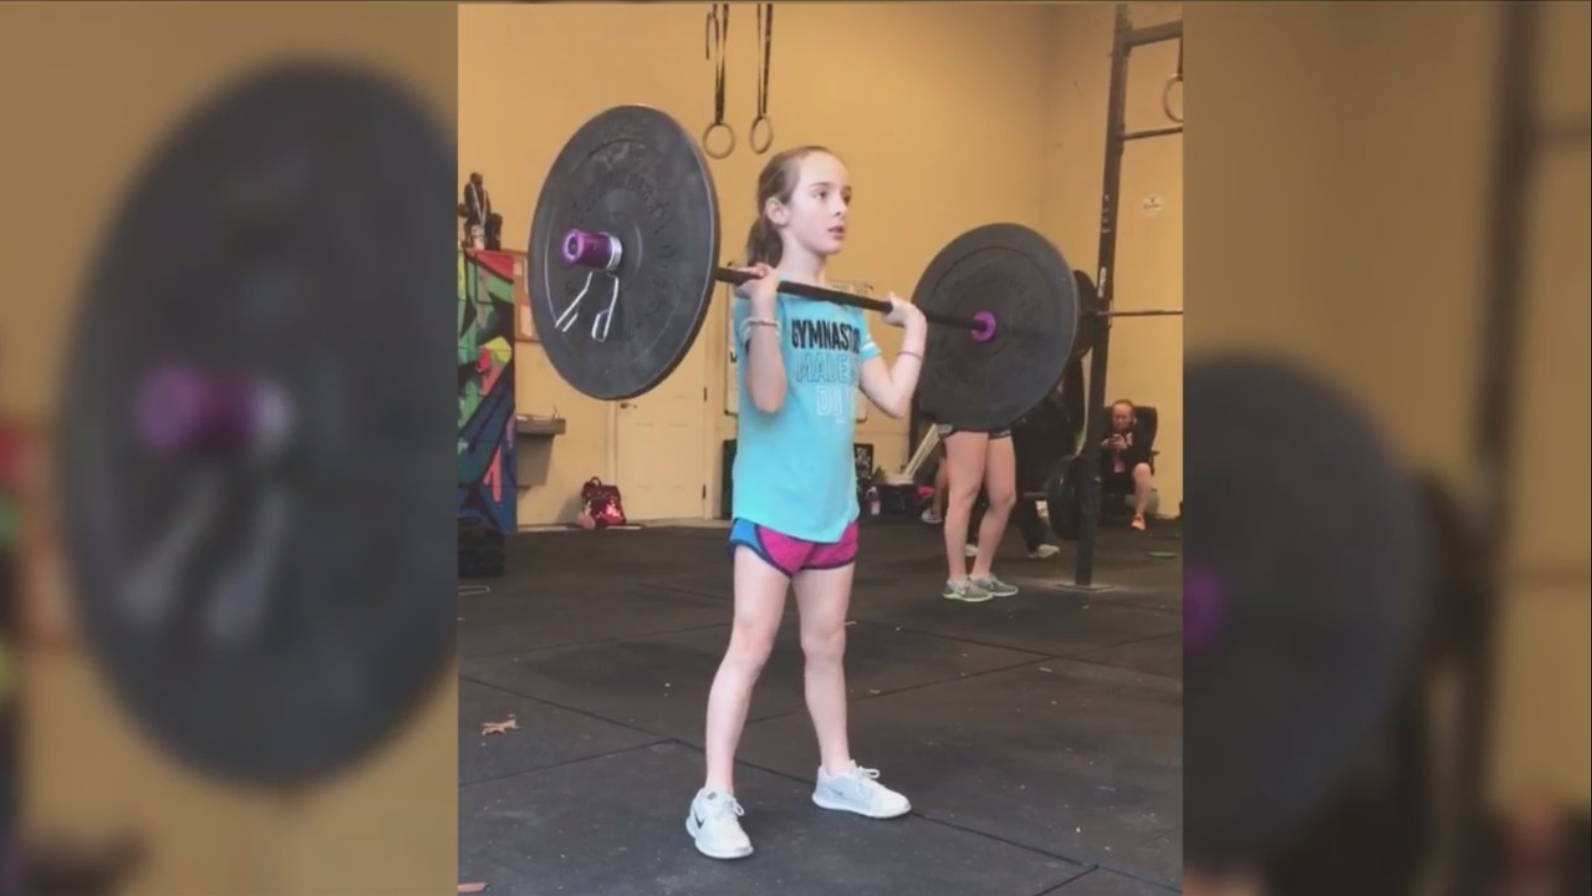 8 Year old competes in national crossfit competition